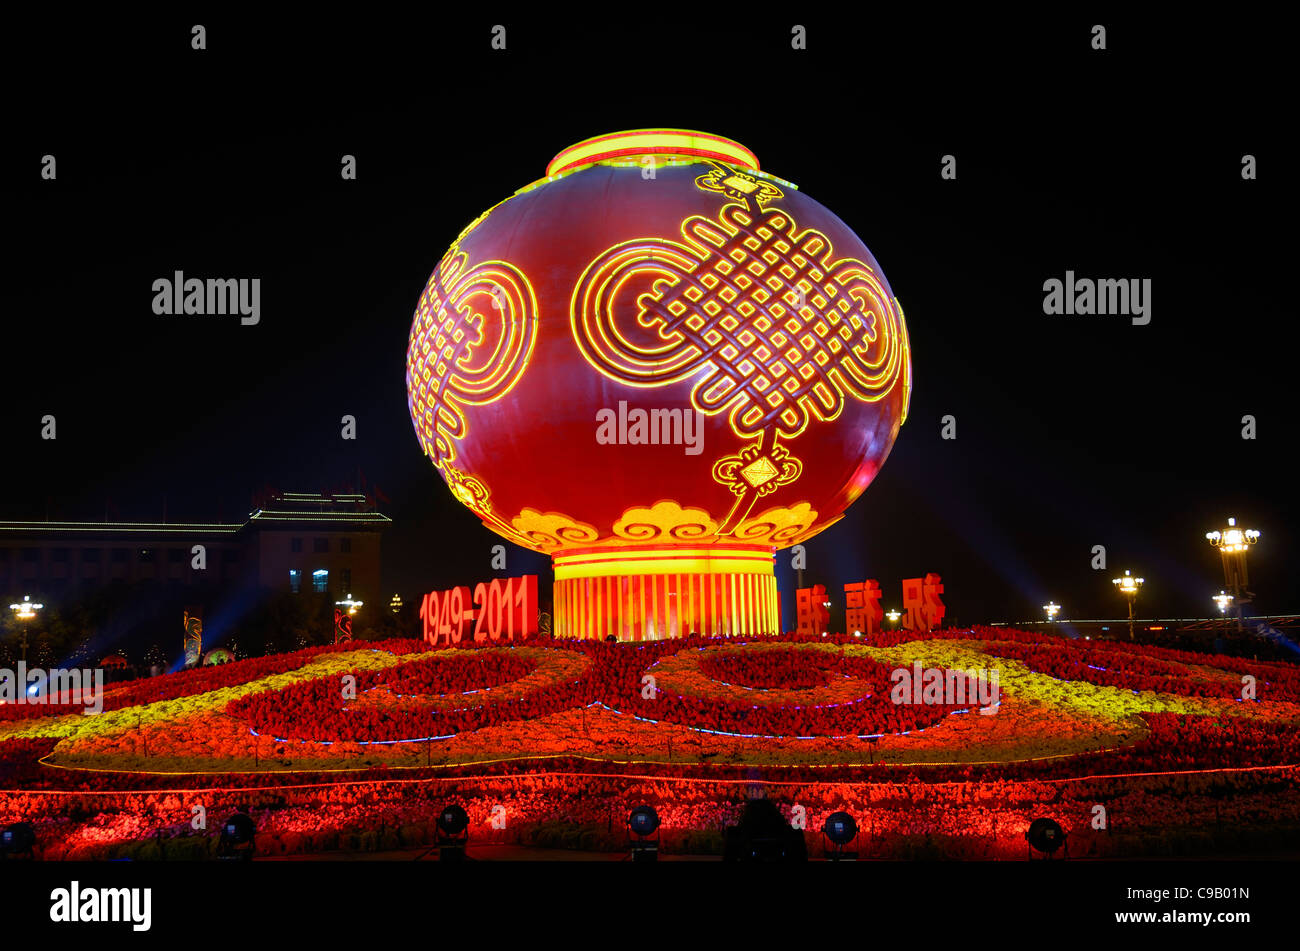 Globe and flower decorations at night National Day celebrations in Tiananmen Square with Great Hall of the People - Stock Image